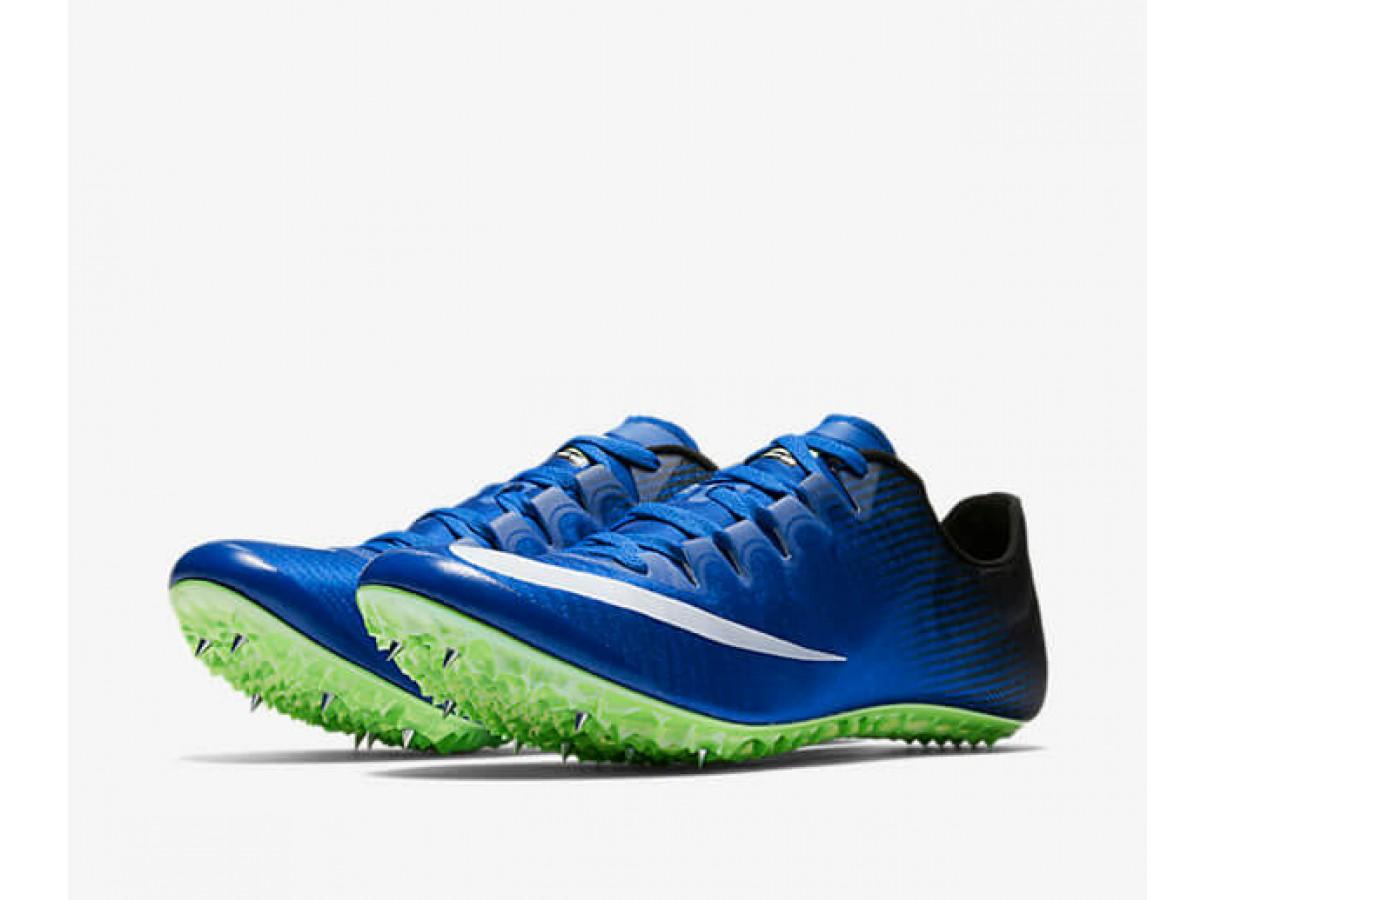 8256cc511e1 Nike Zoom Superfly Elite features a metal spike plate ...